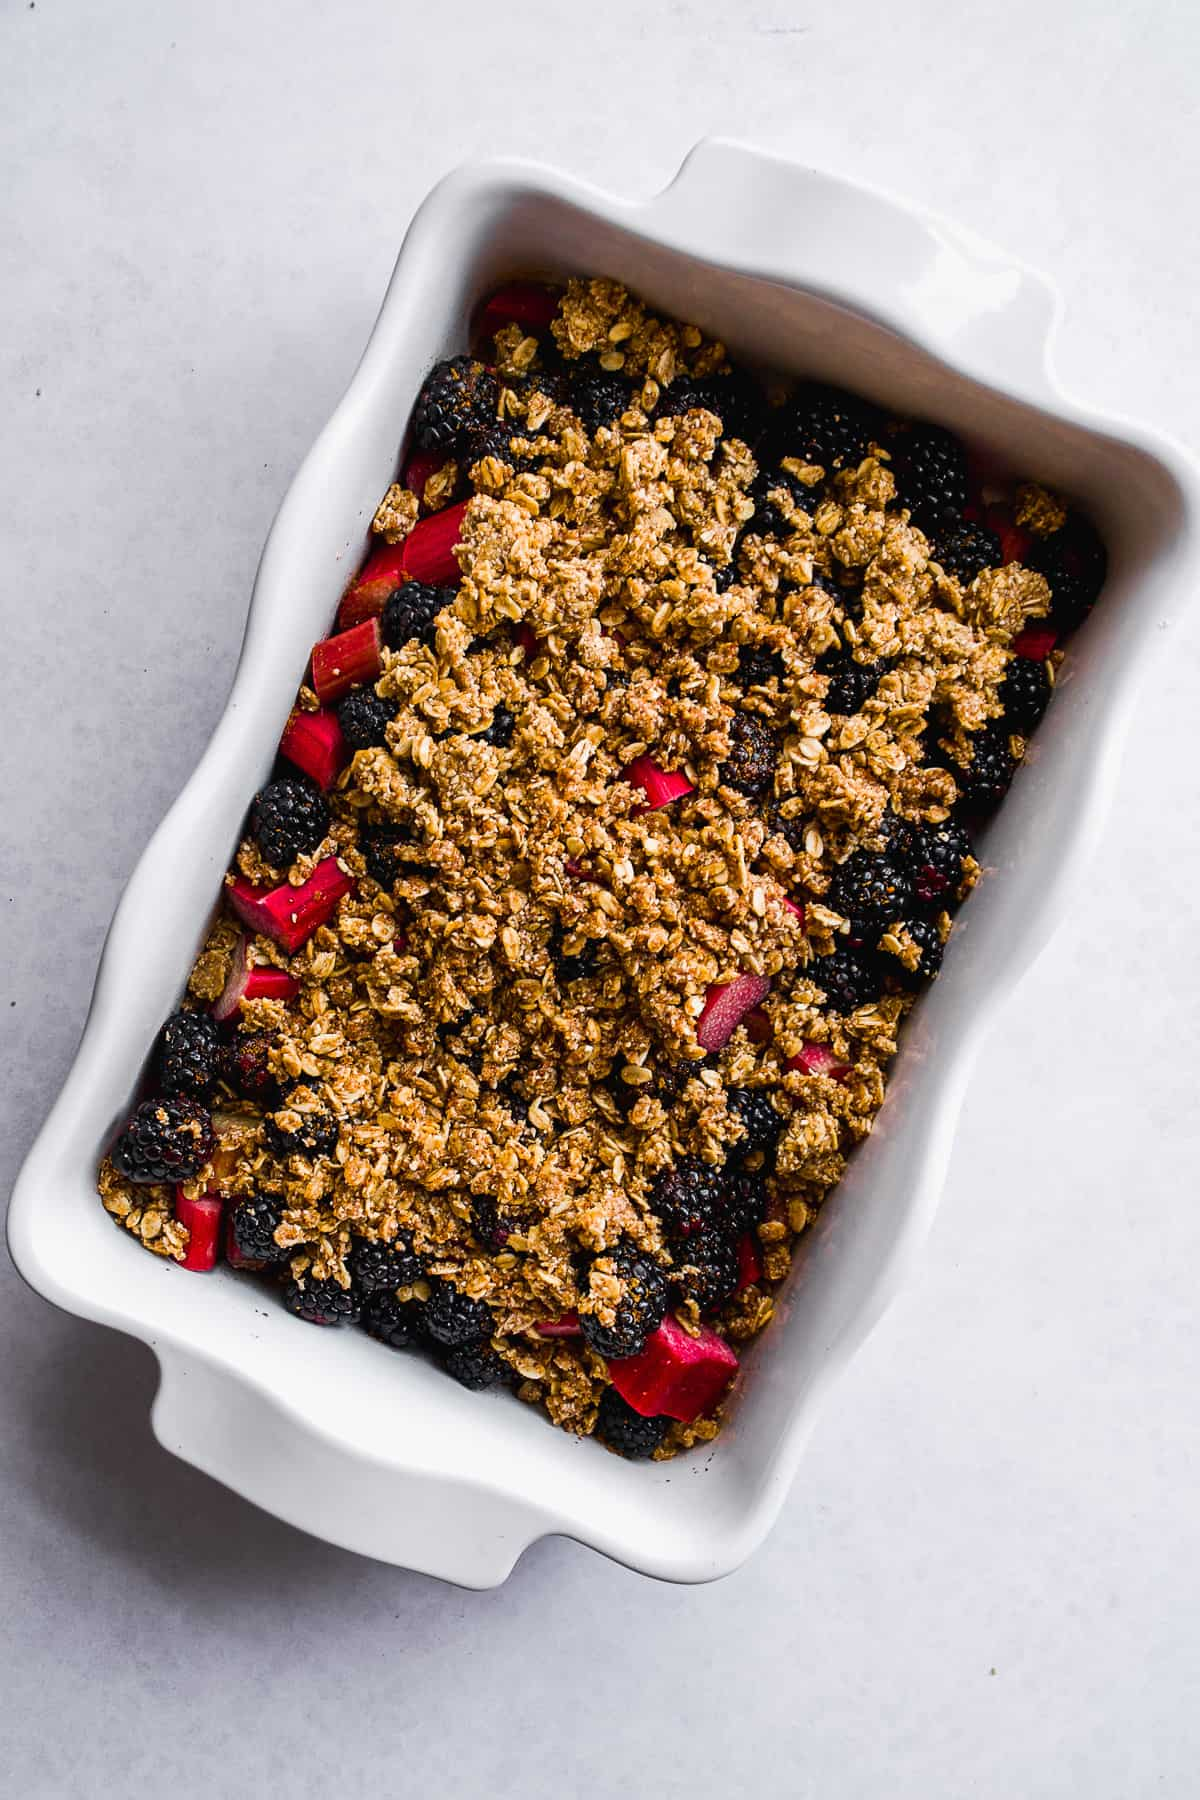 White dish with sliced rhubarb and blackberries and a gluten free crumble on top.